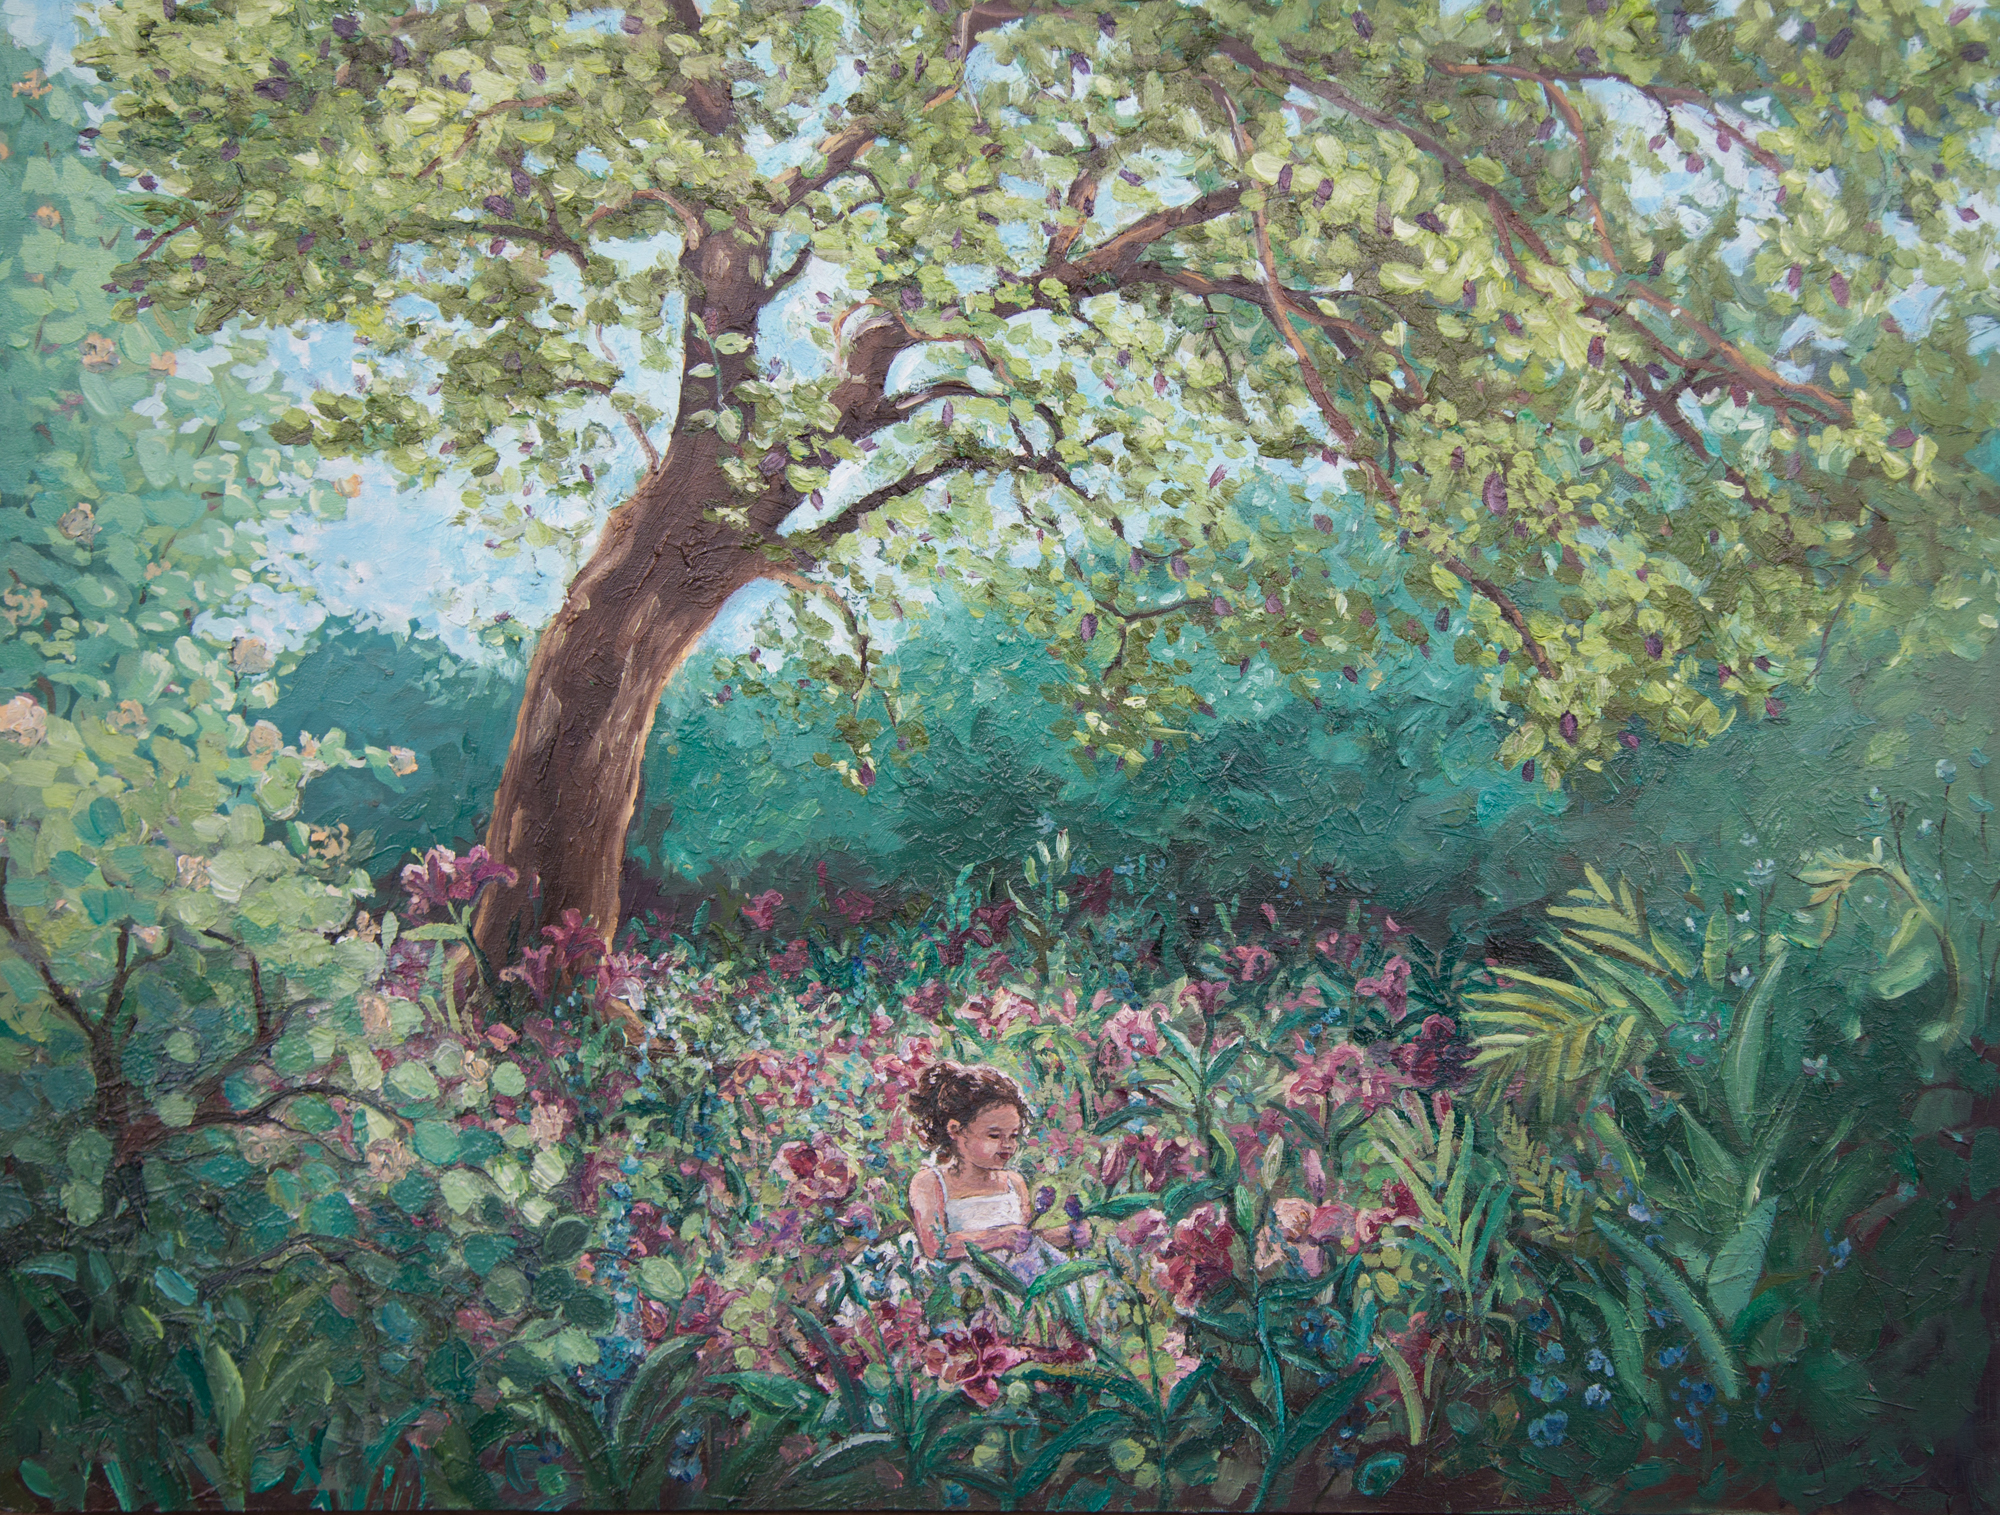 Emilia under the Mulberry Tree | 6 of 7